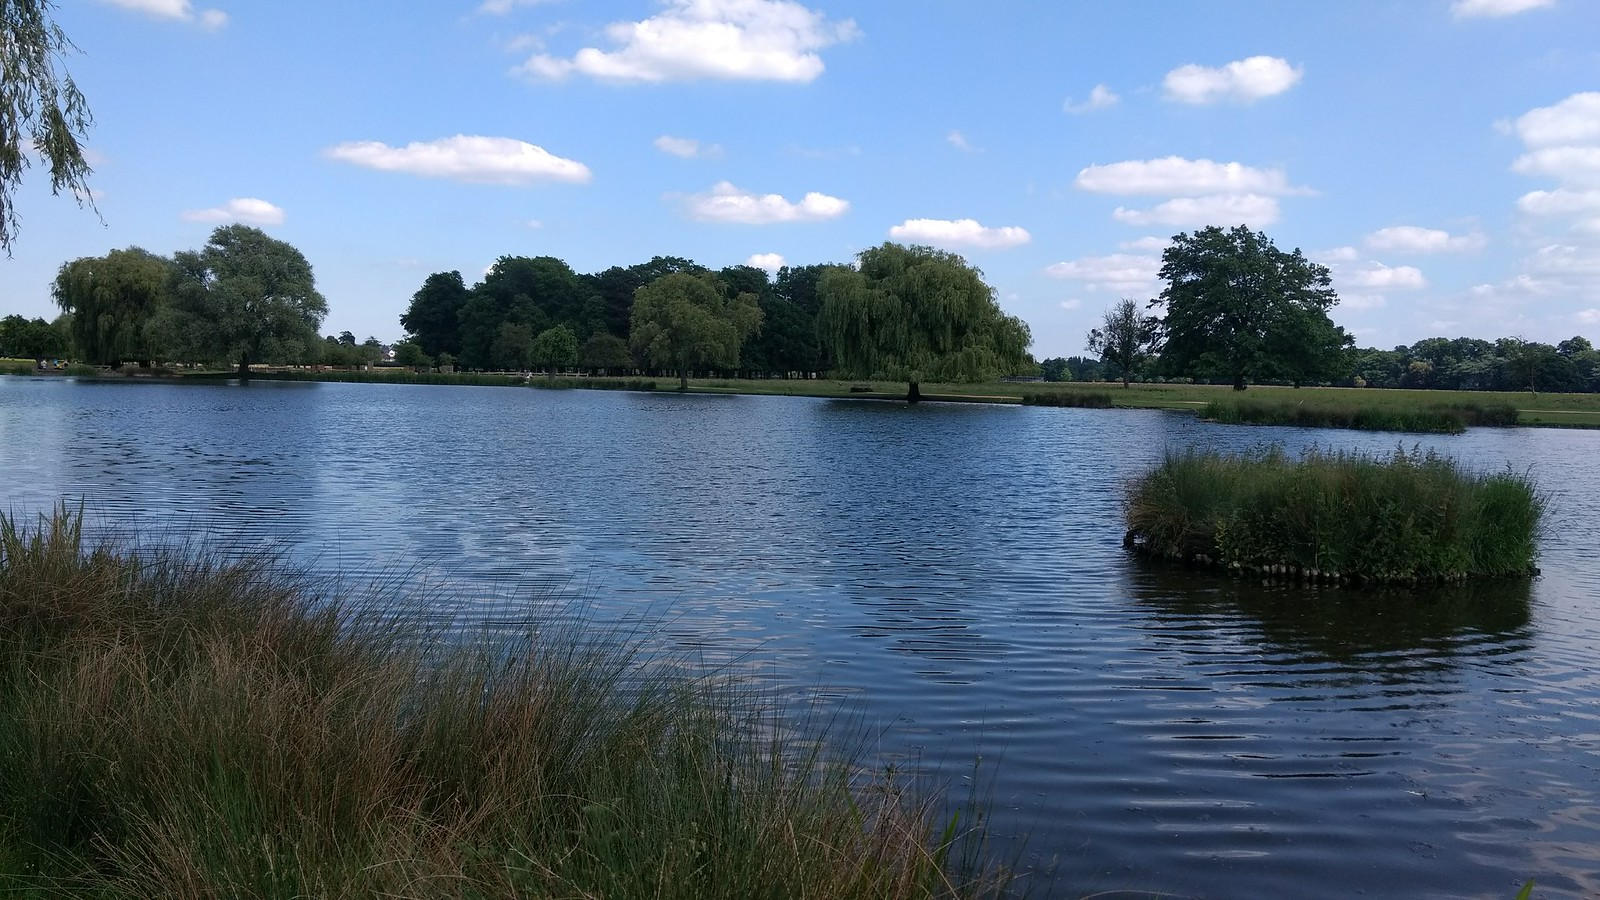 Hampton Wick Pond